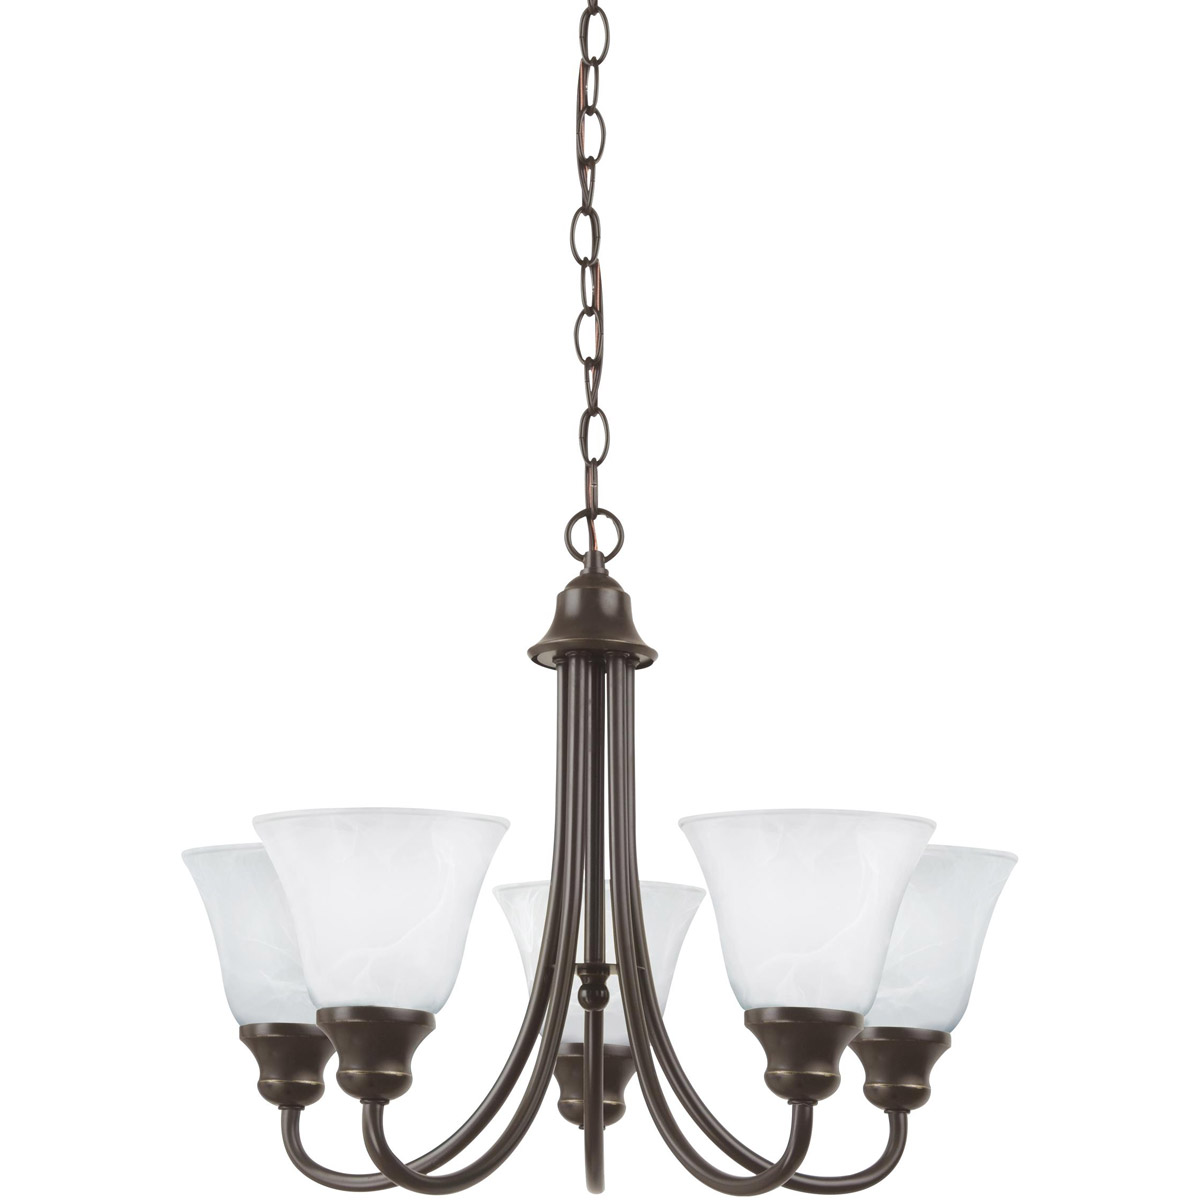 Sea Gull Lighting Windgate 5 Light Chandelier in Heirloom Bronze 35940-782 photo